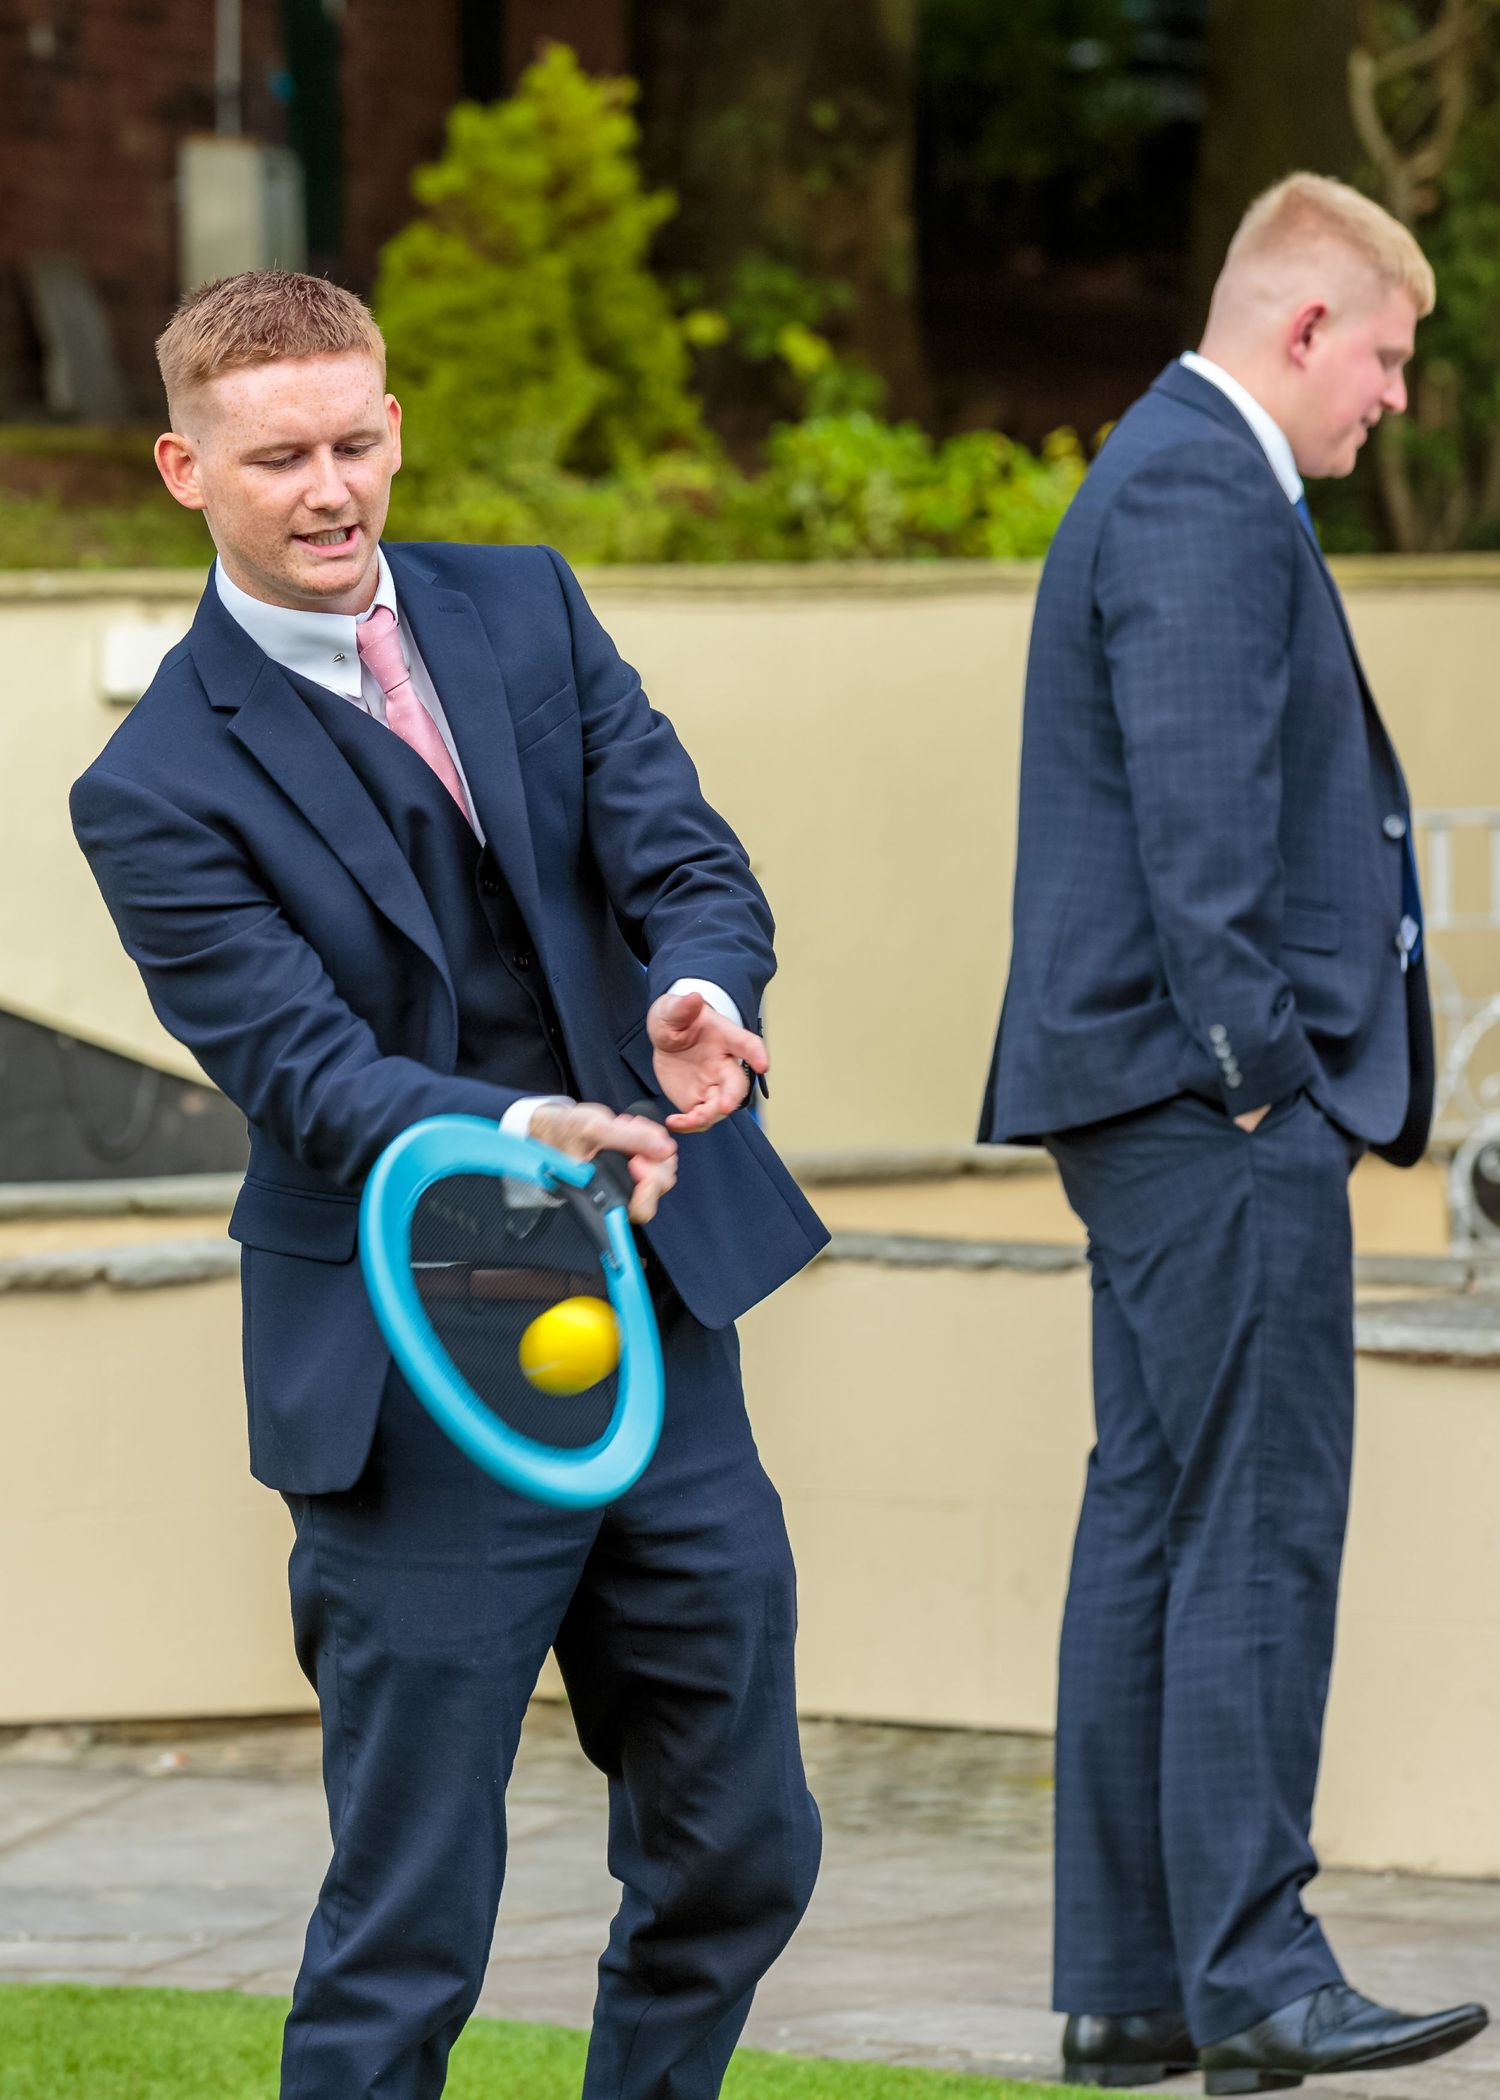 wedding guest in a smart suits hits the ball while playing tennis